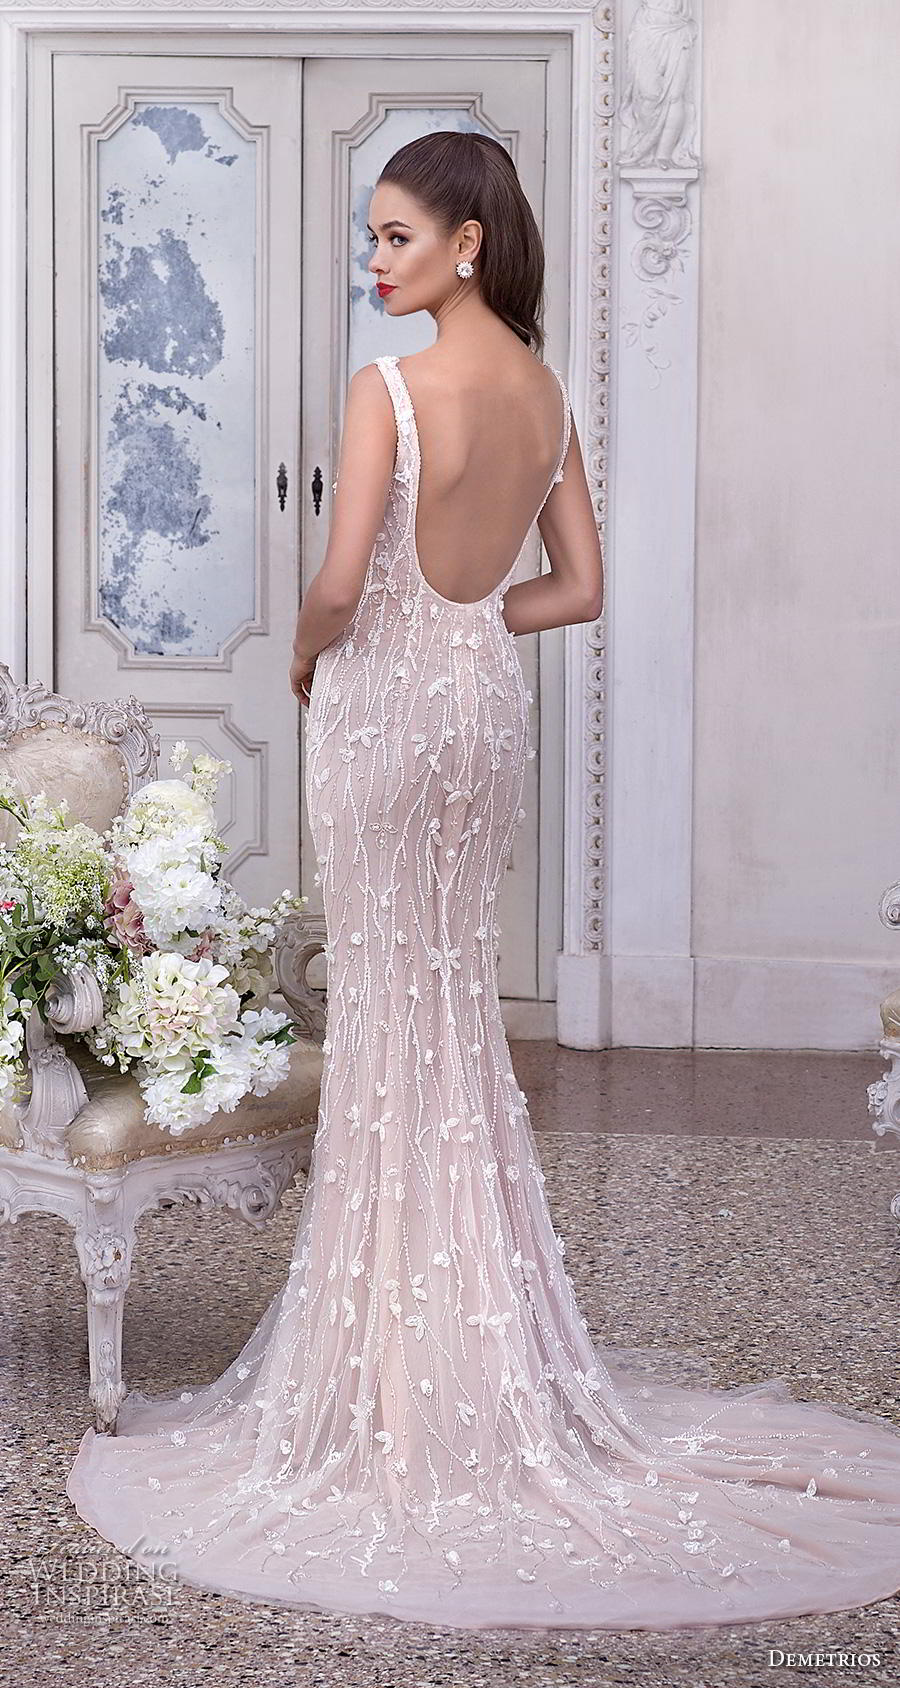 demetrios 2019 bridal sleeveless deep plunging v neck full emebllishment glamorous elegant sheath fit and flare wedding dress backless sccop back medium train (16) bv